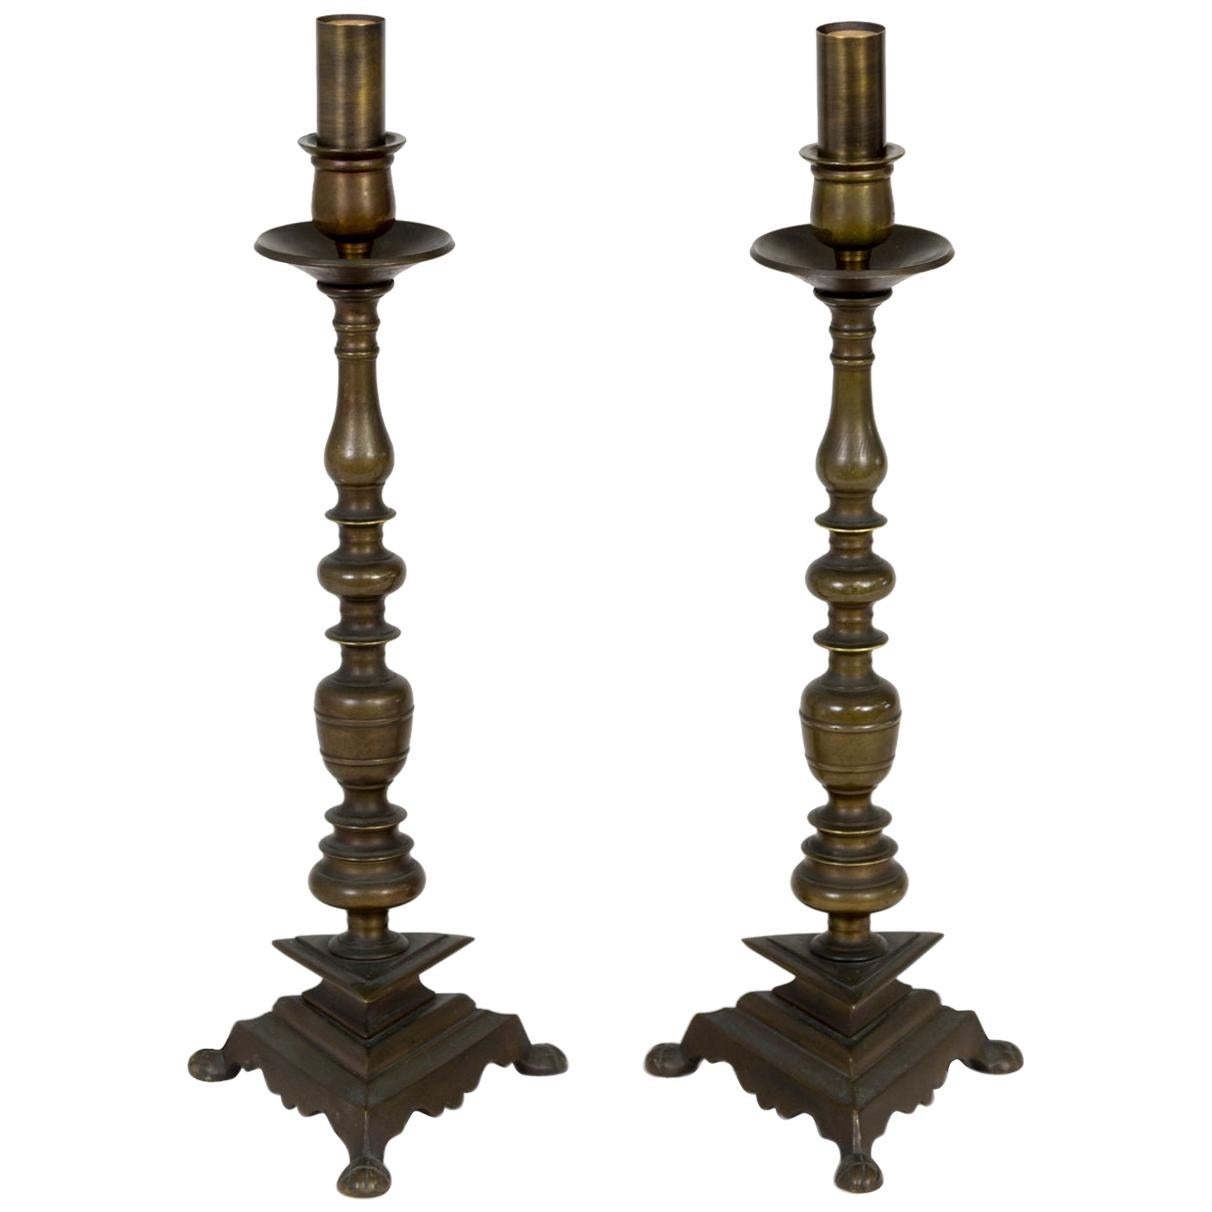 Solid Brass Candlestick Table Lamps w/ Triangular Base 'Pair'